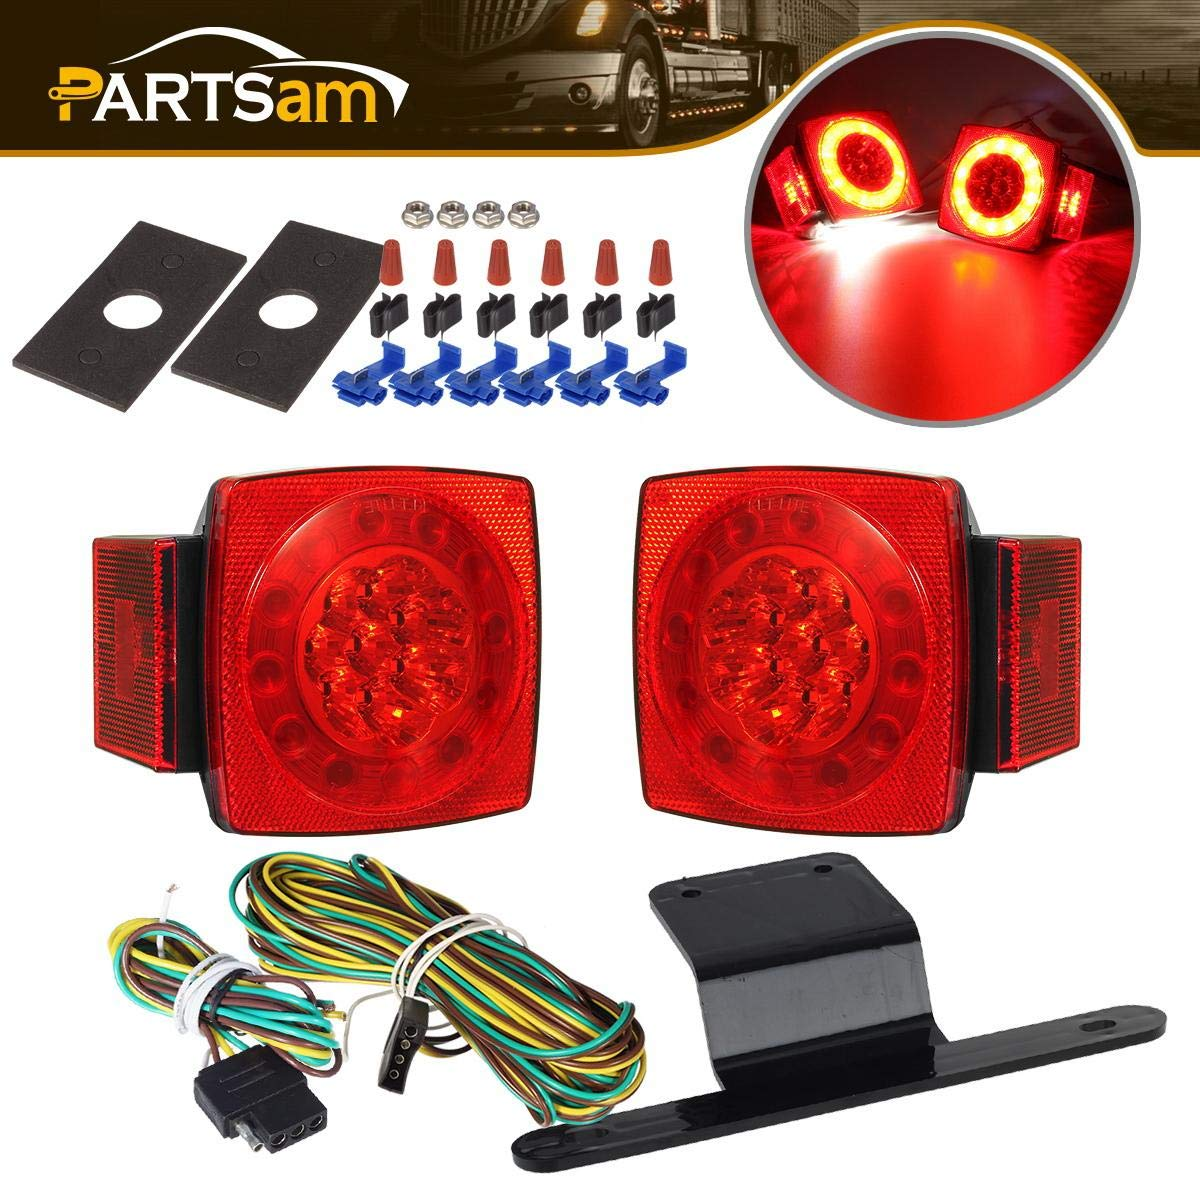 Partsam Led Submersible Trailer Tail Lights Kit, Waterproof 12V Square LED Trailer Lights Halo Glow with Wiring Harness Combination Brake Stop Turn Running License Lights for RV Marine Boat Trailer by Partsam